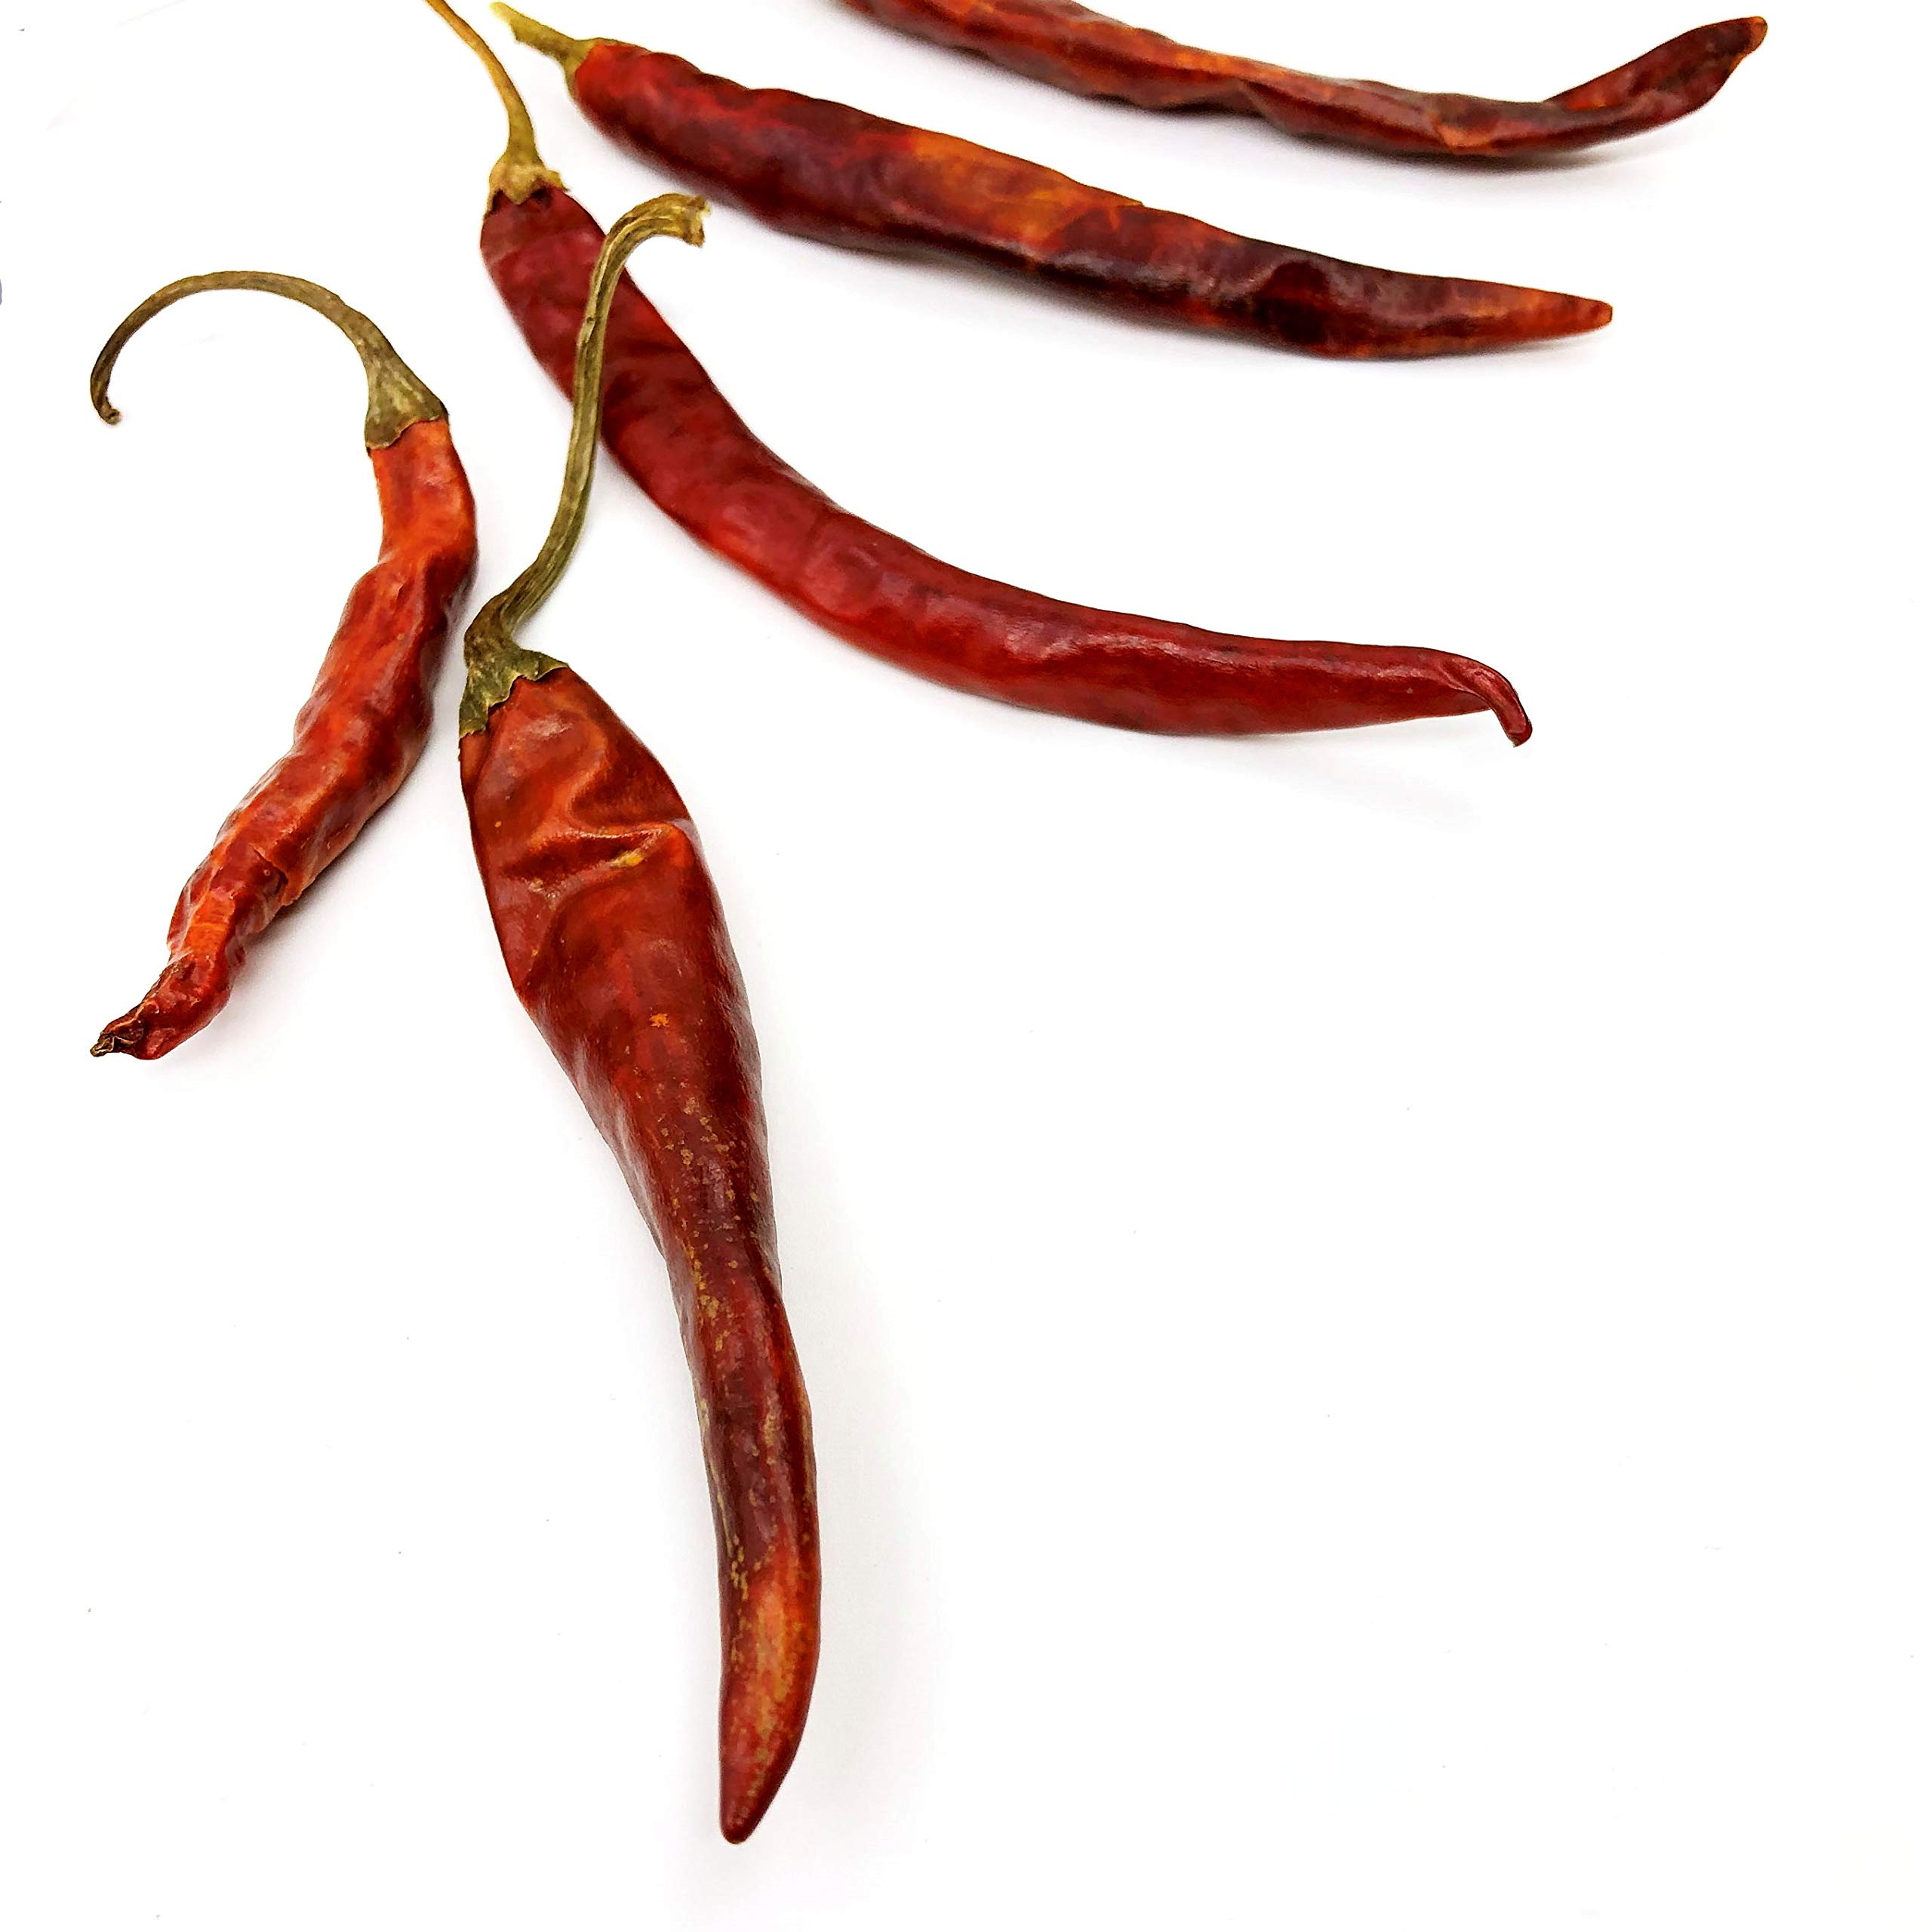 Grow and Make Deluxe DIY Hot Sauce Making Kit - Learn how to make 6 spicy sauces at home with chipotle, arbol, and guajillo peppers! by Grow and Make (Image #4)